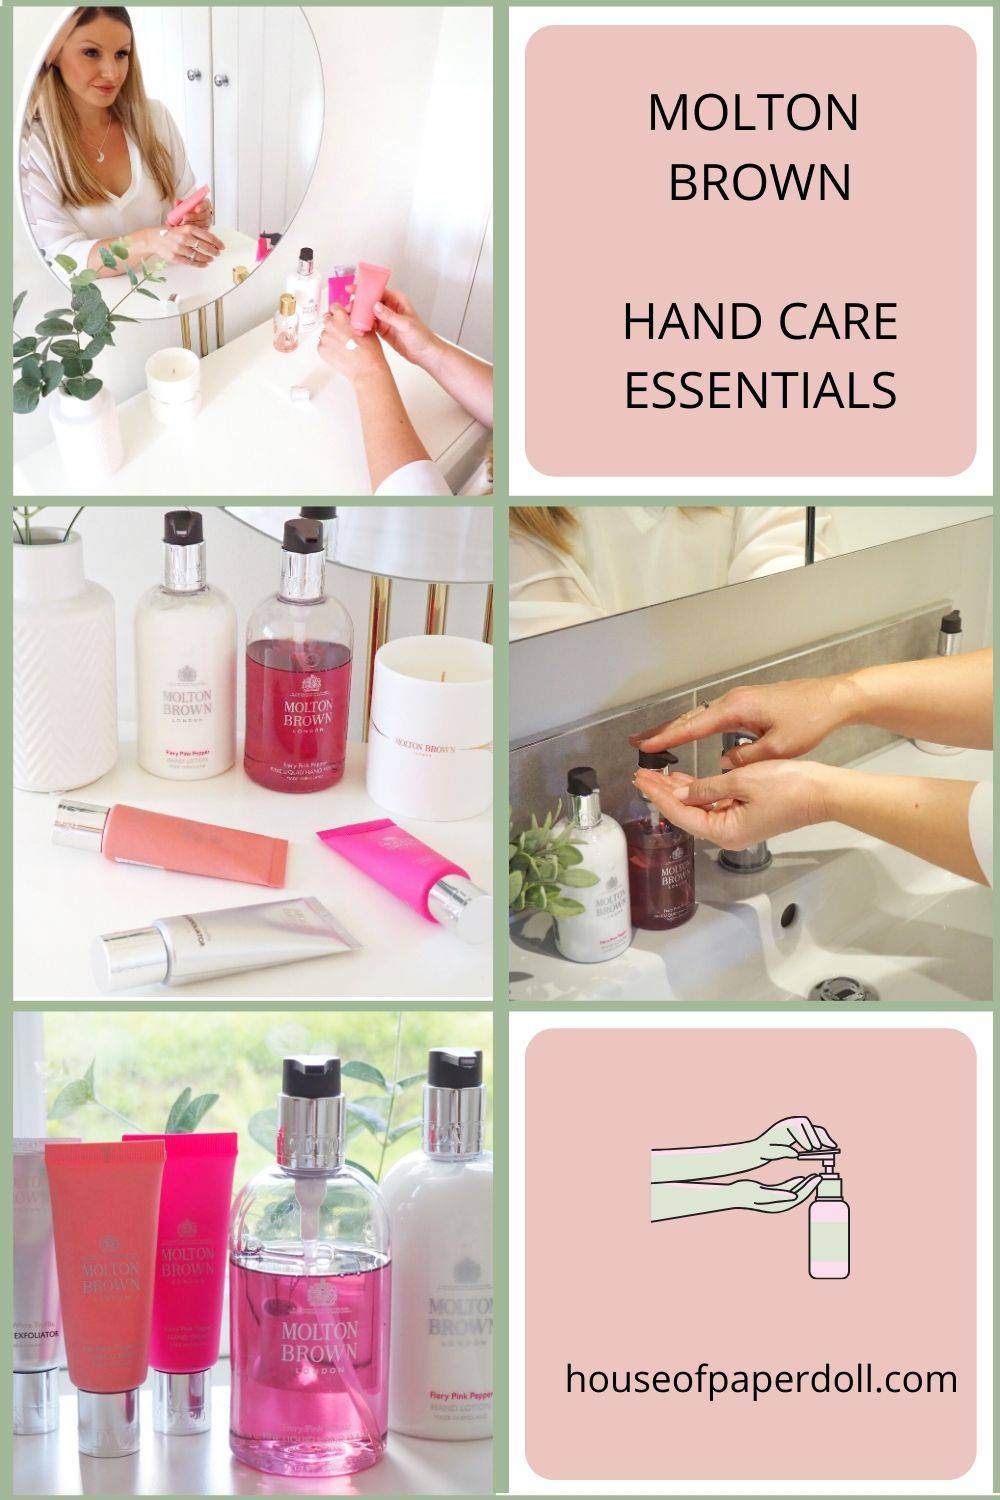 Molton Brown Hand Care Essentials